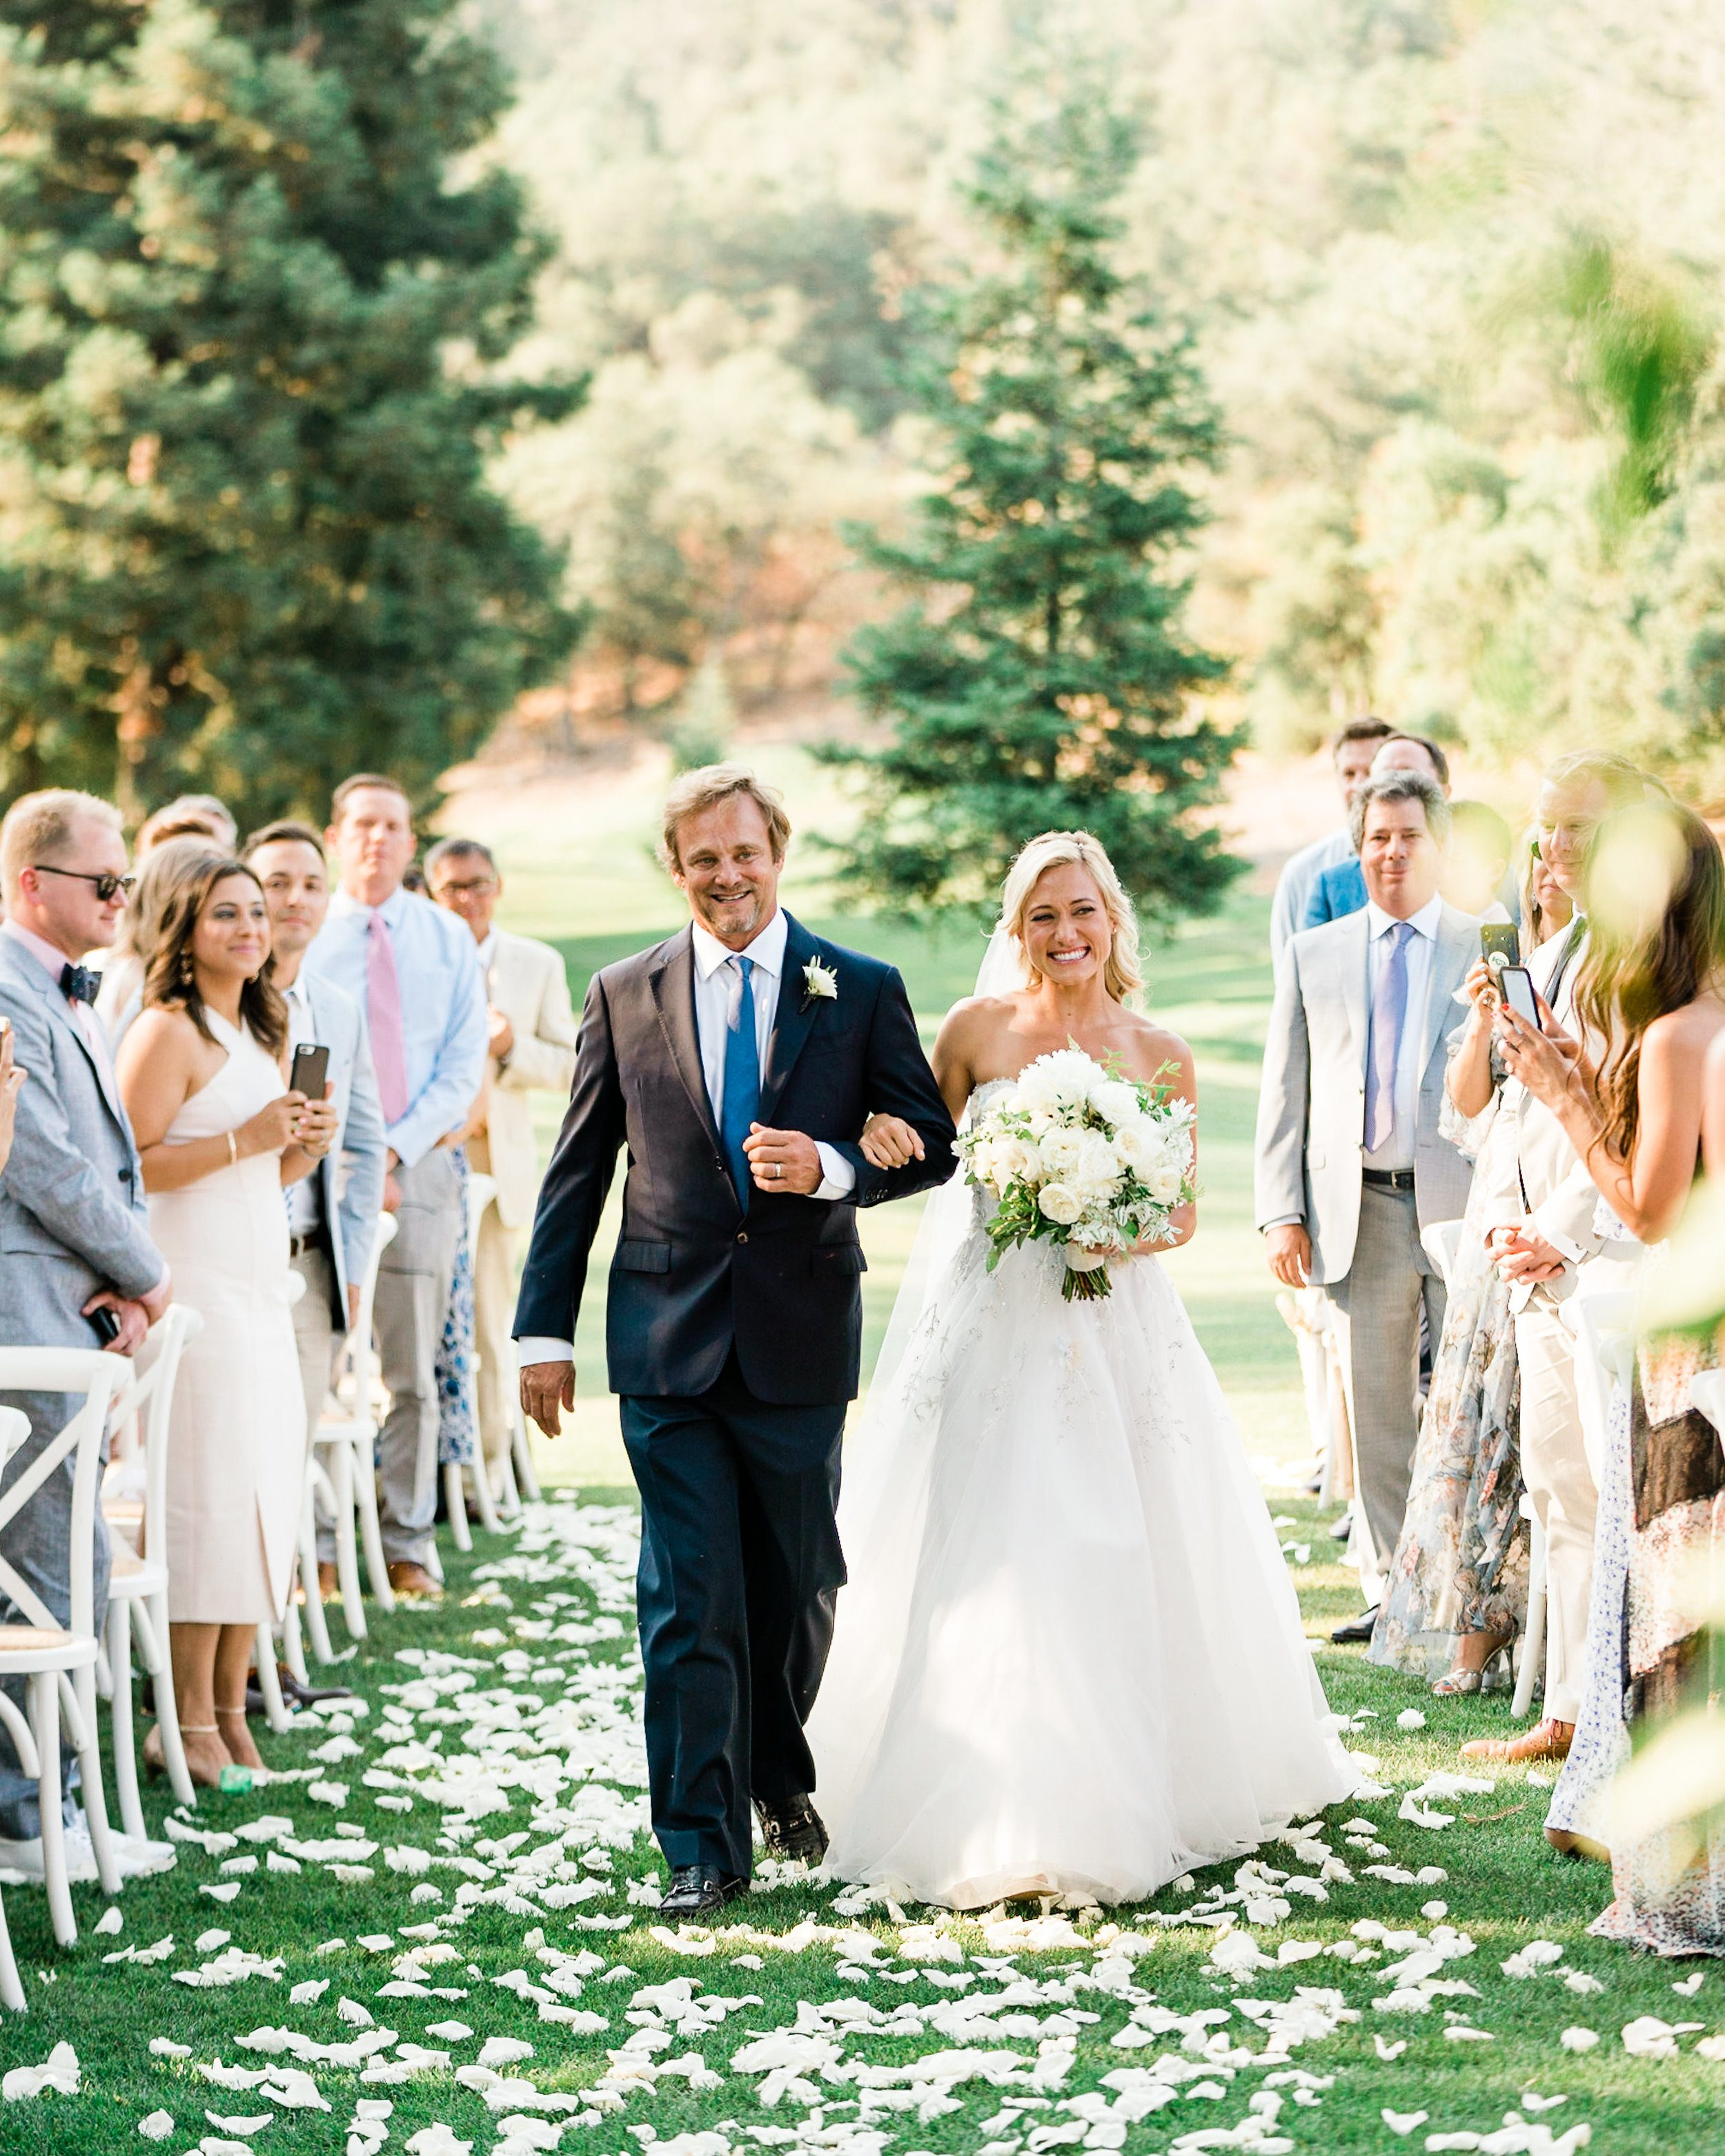 kristin hodge jon chu wedding at meadowood